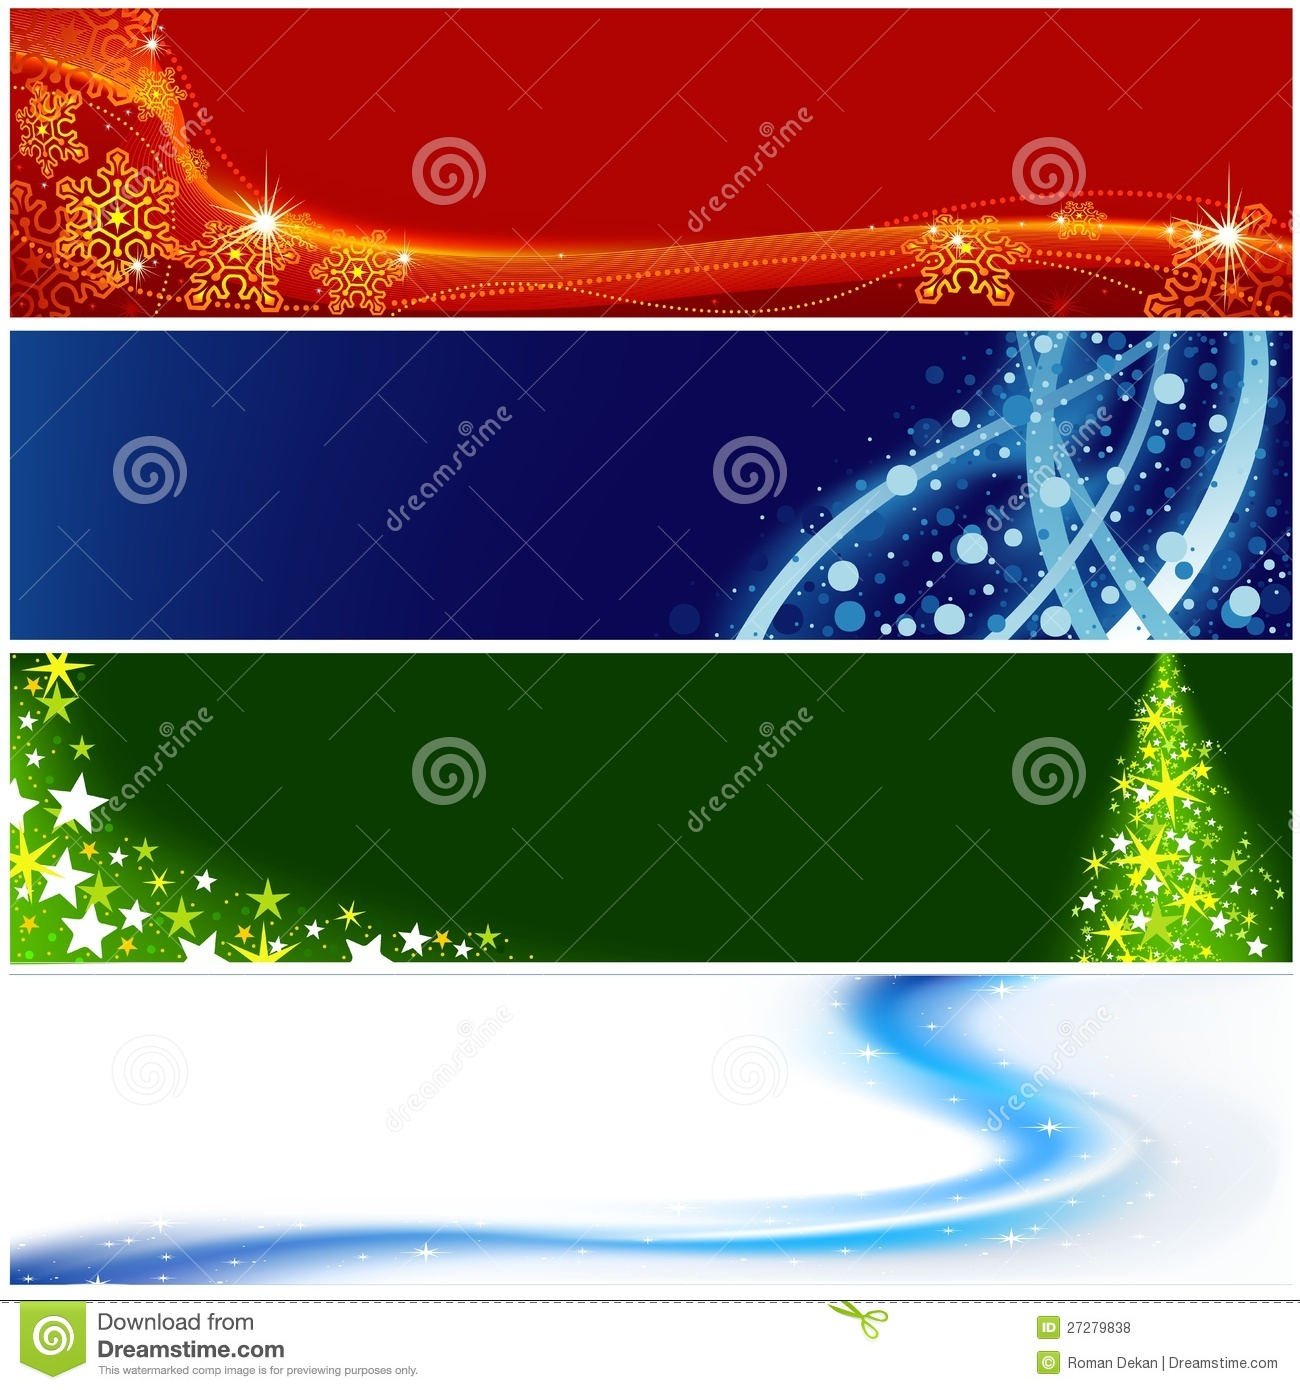 Christmas Banners Royalty Free Stock Photos Image 27279838